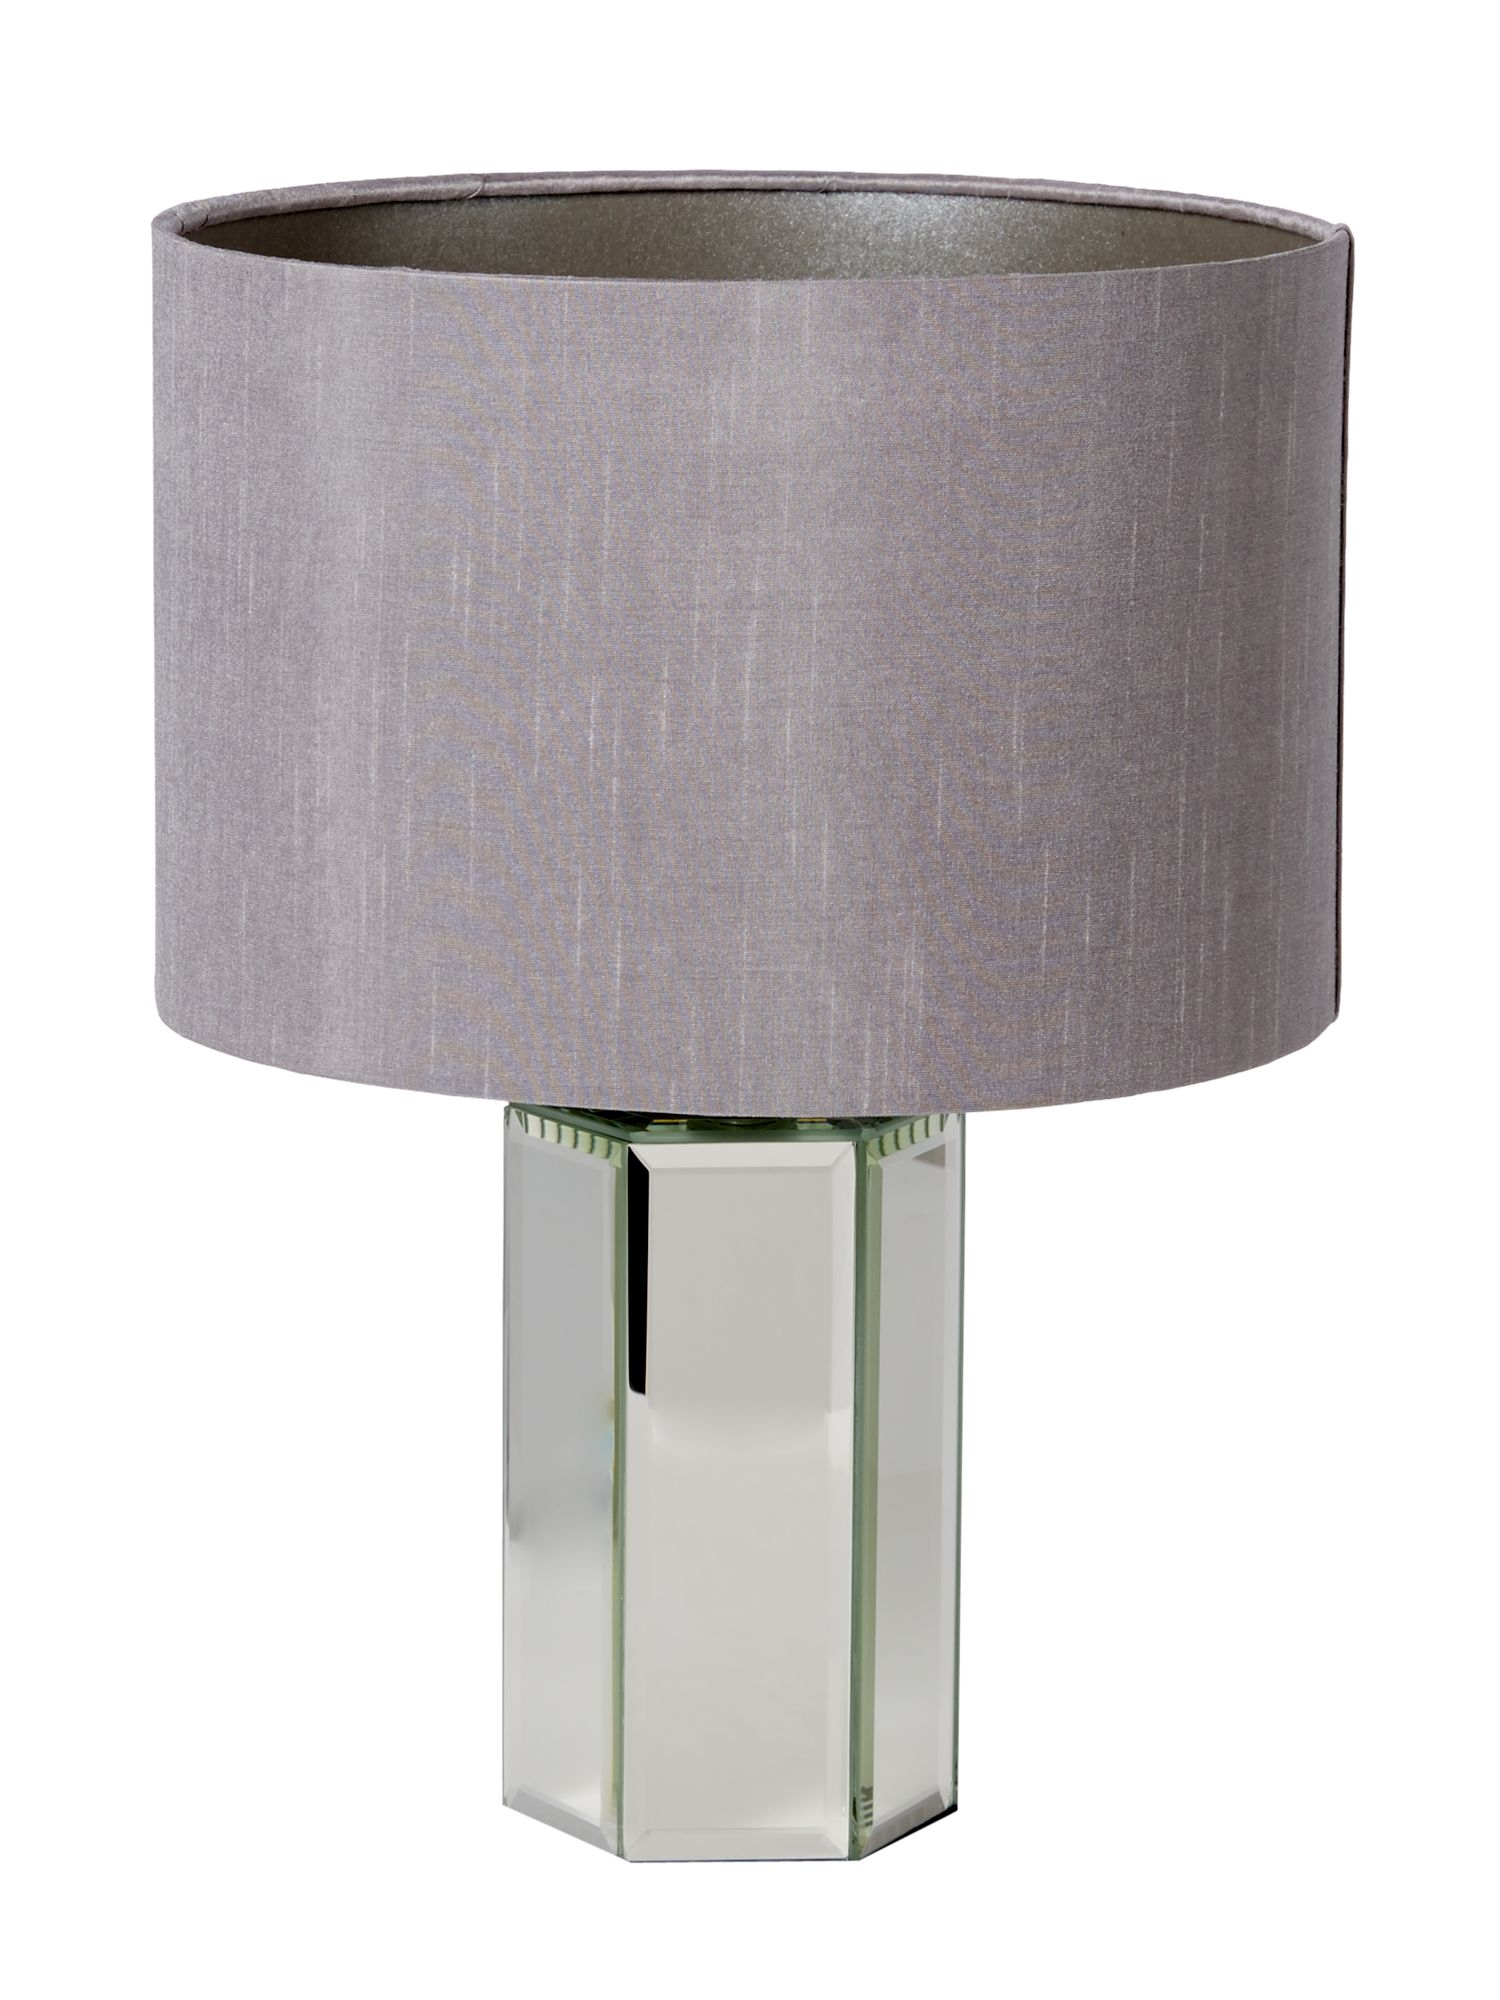 Light Grey Bedside Table: Modern Silver Glass Mirrored Table Lamp Bedside Light With